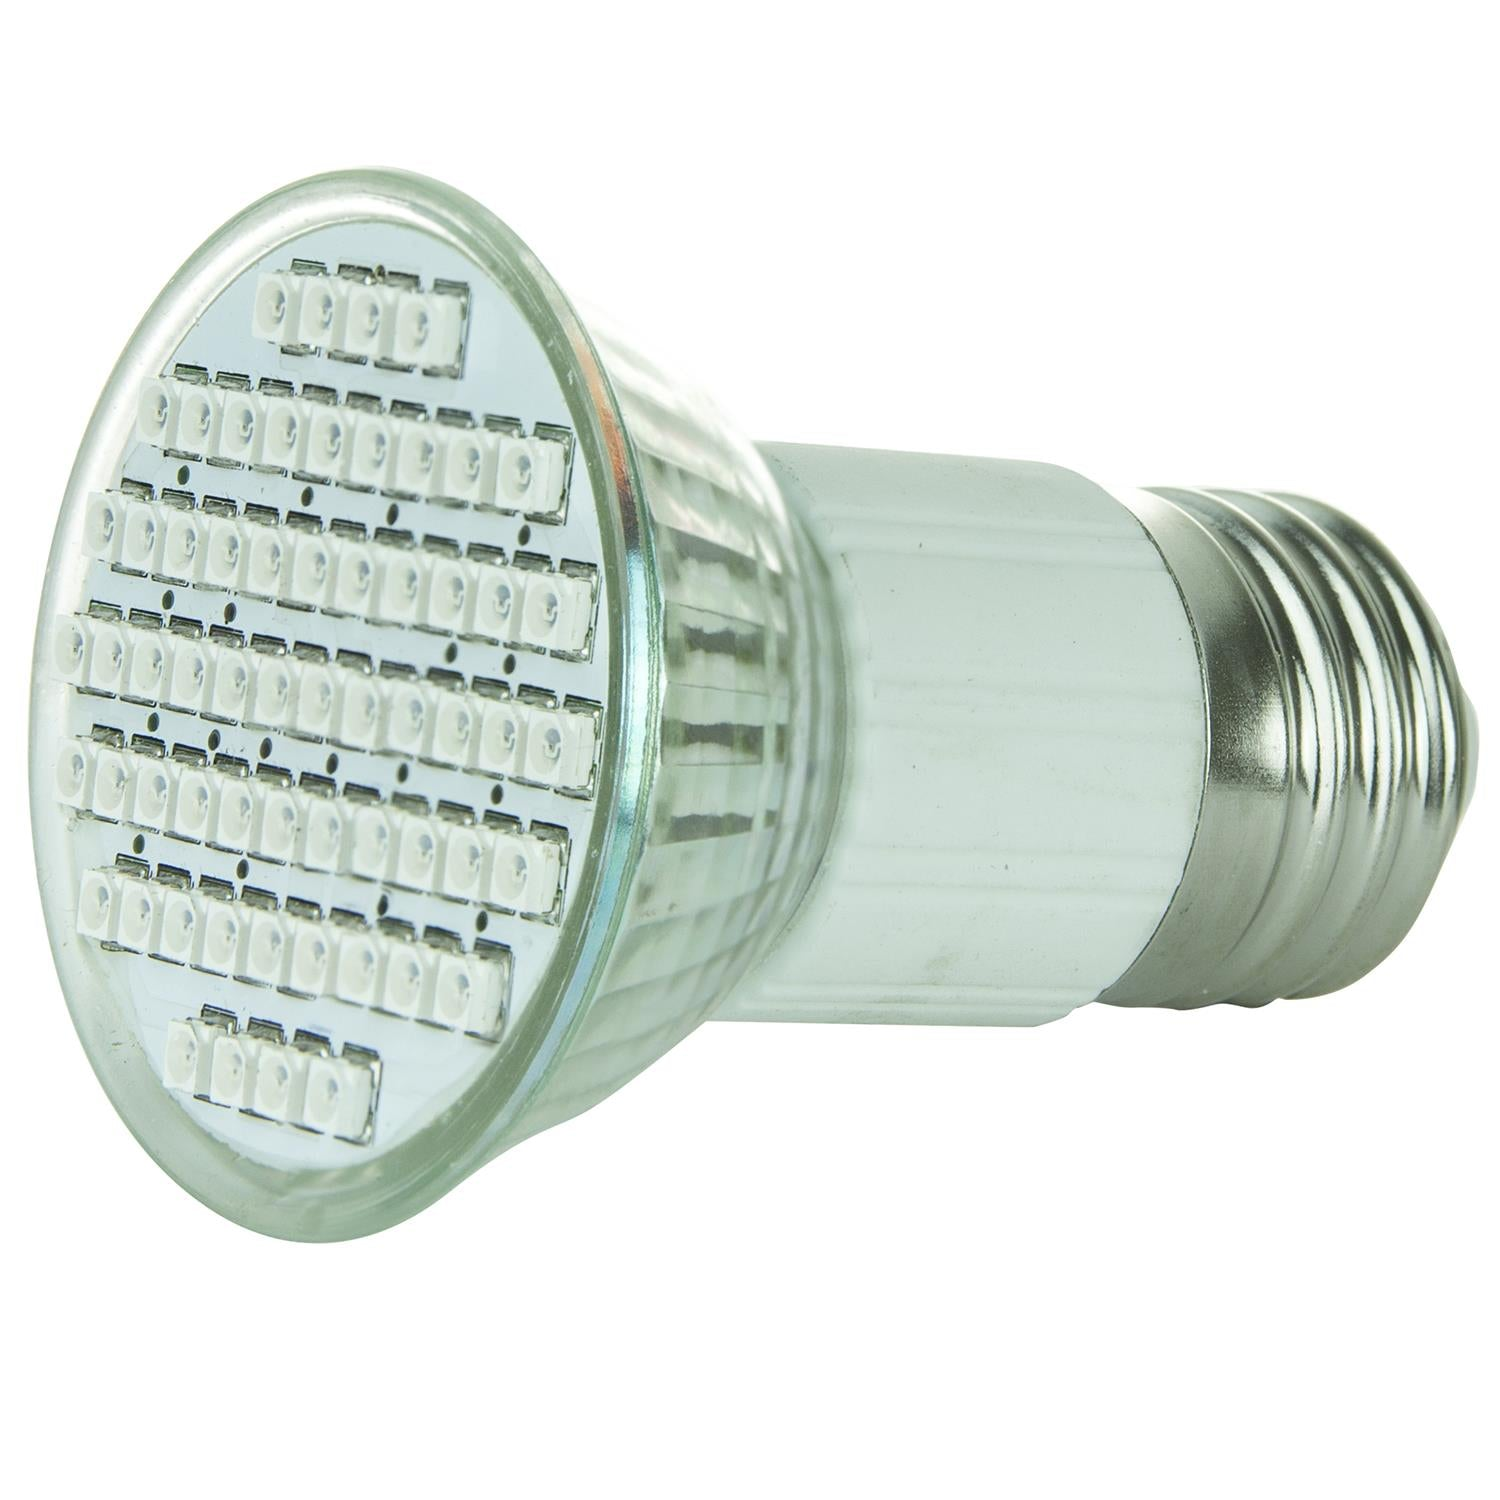 Sunlite 80190 Su Led Mr16 Reflector Medium Base Bulb: Sunlite 80196-SU LED JDR MR16 Mini Reflector 2.8w Light